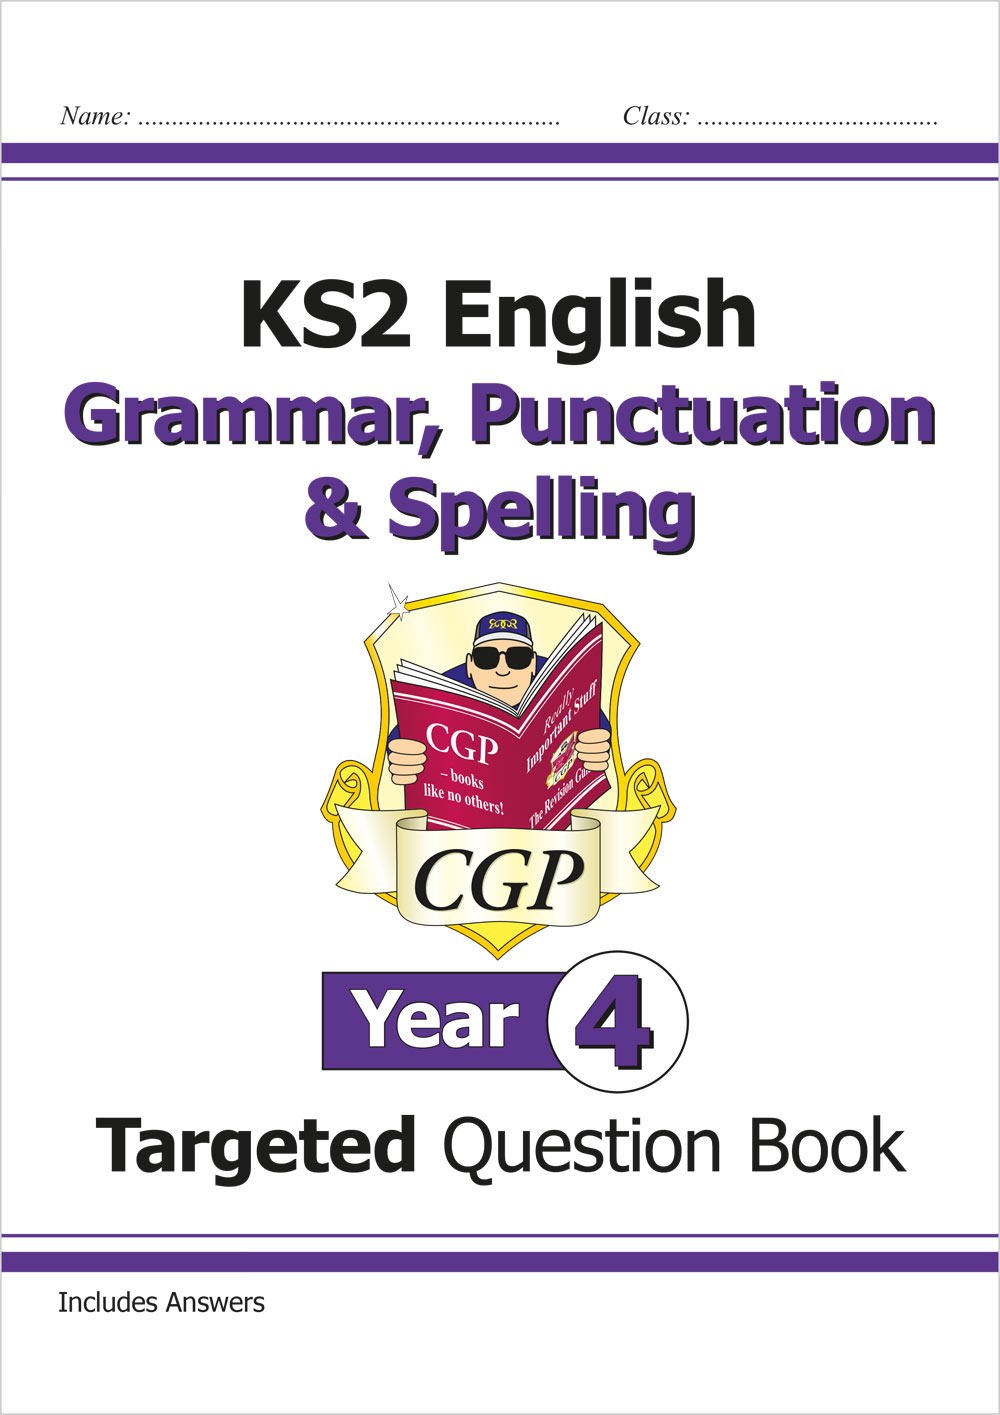 E4W22 - KS2 English Targeted Question Book: Grammar, Punctuation & Spelling - Year 4